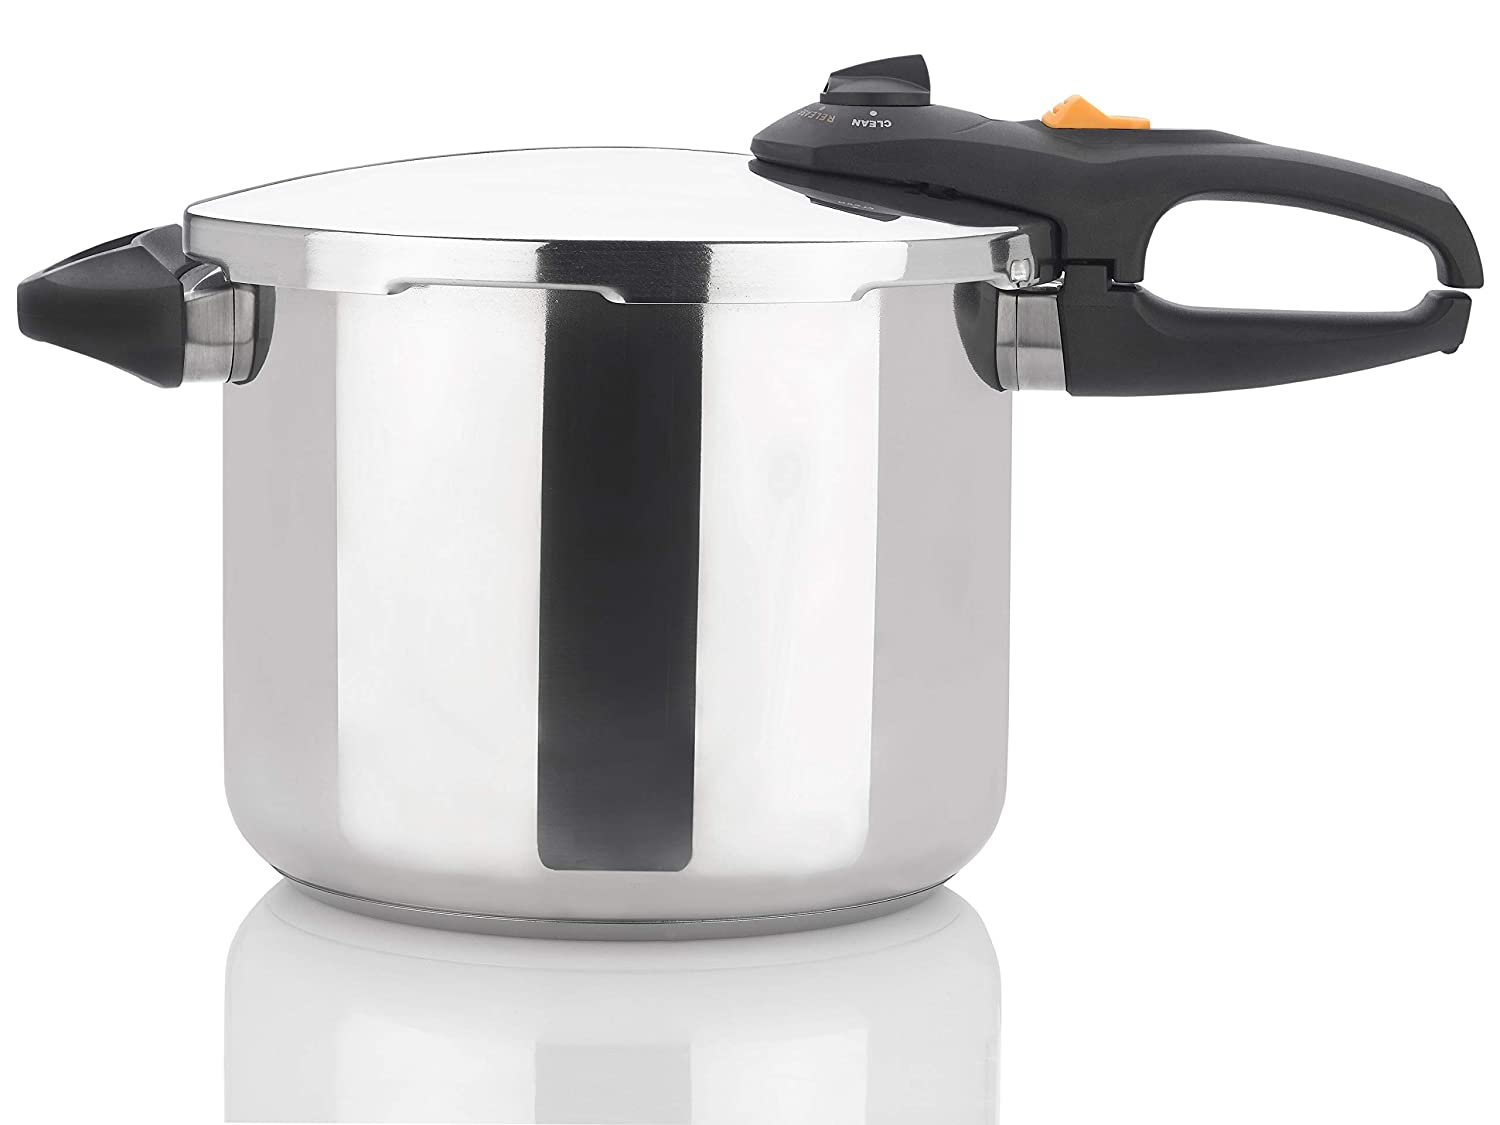 Zavor DUO 10 Quart Multi-Setting Pressure Cooker and Canner with Accessories - Polished Stainless Steel (ZCWDU04)